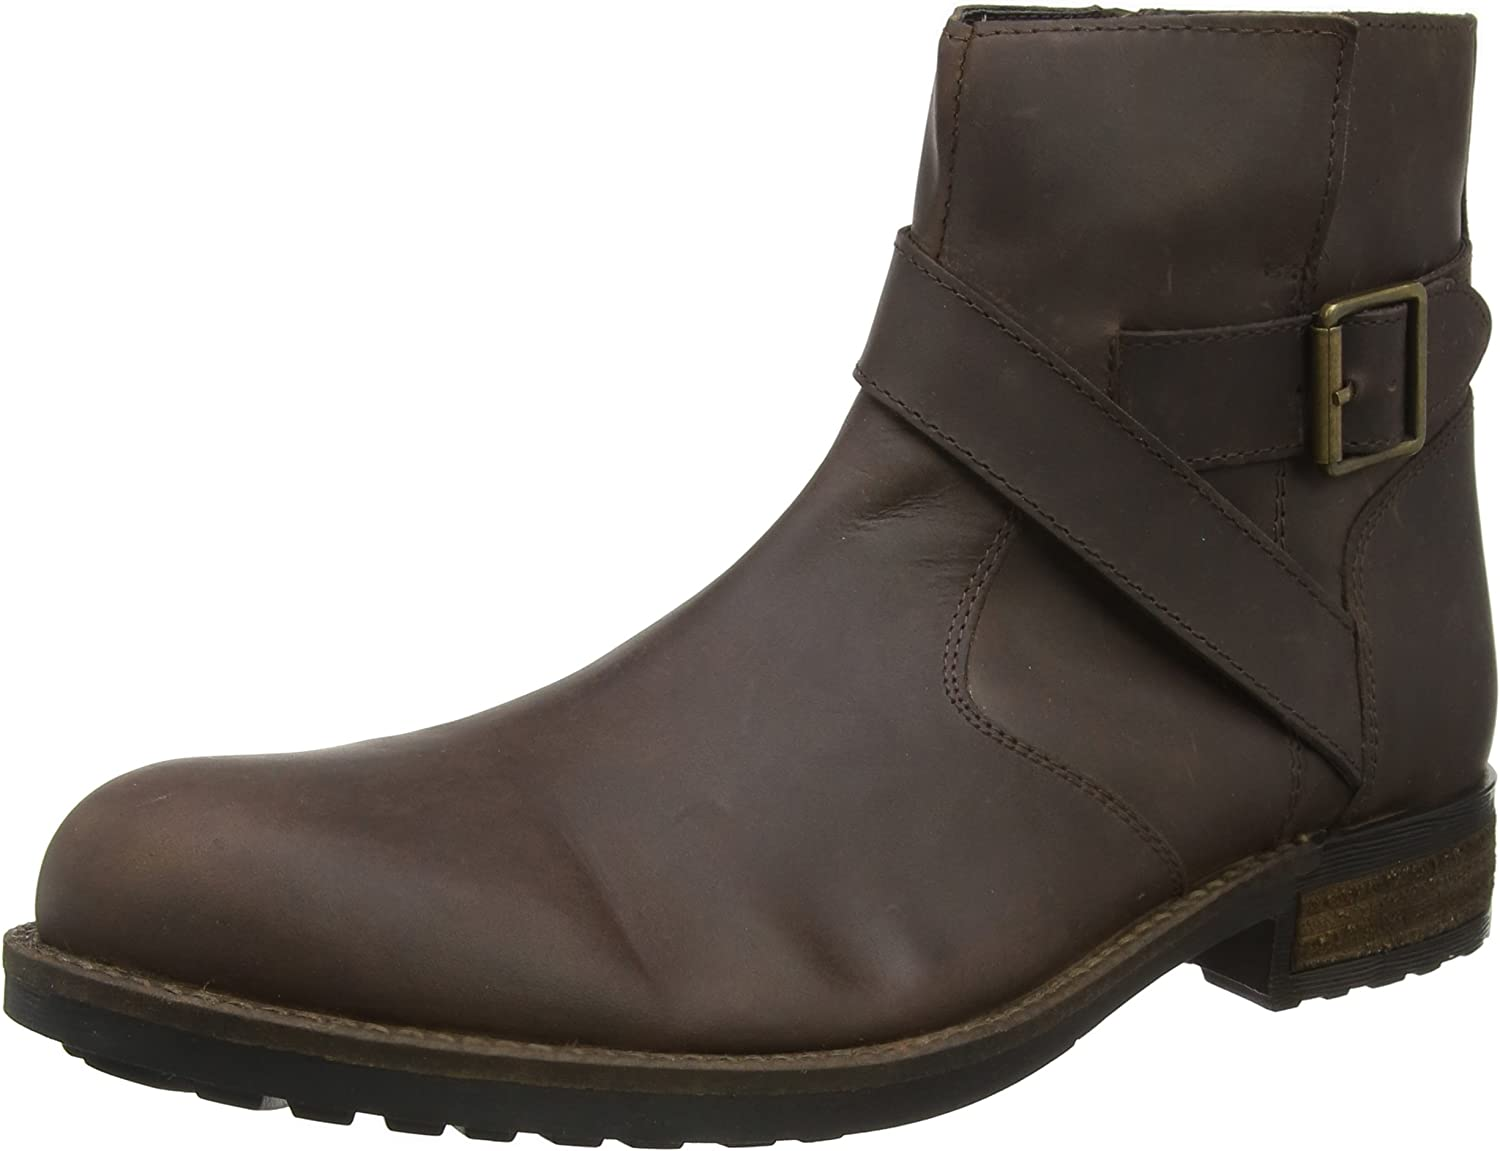 Joe Browns Men's Oiled Leather Biker Boots